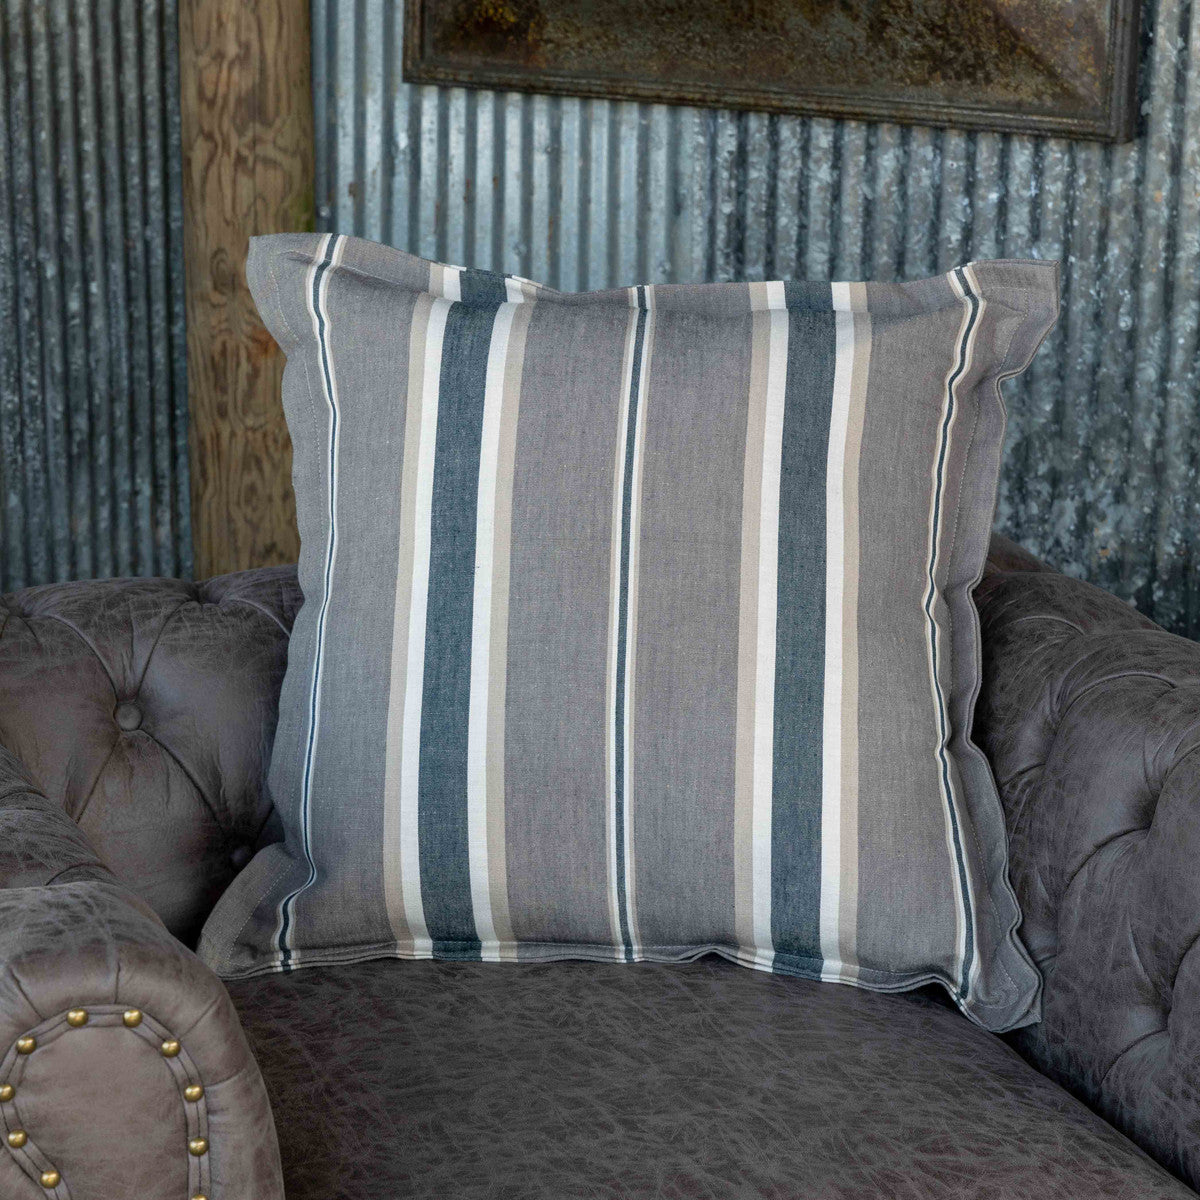 Lovecup Coal Striped Home Pillow, Set of 2 L702